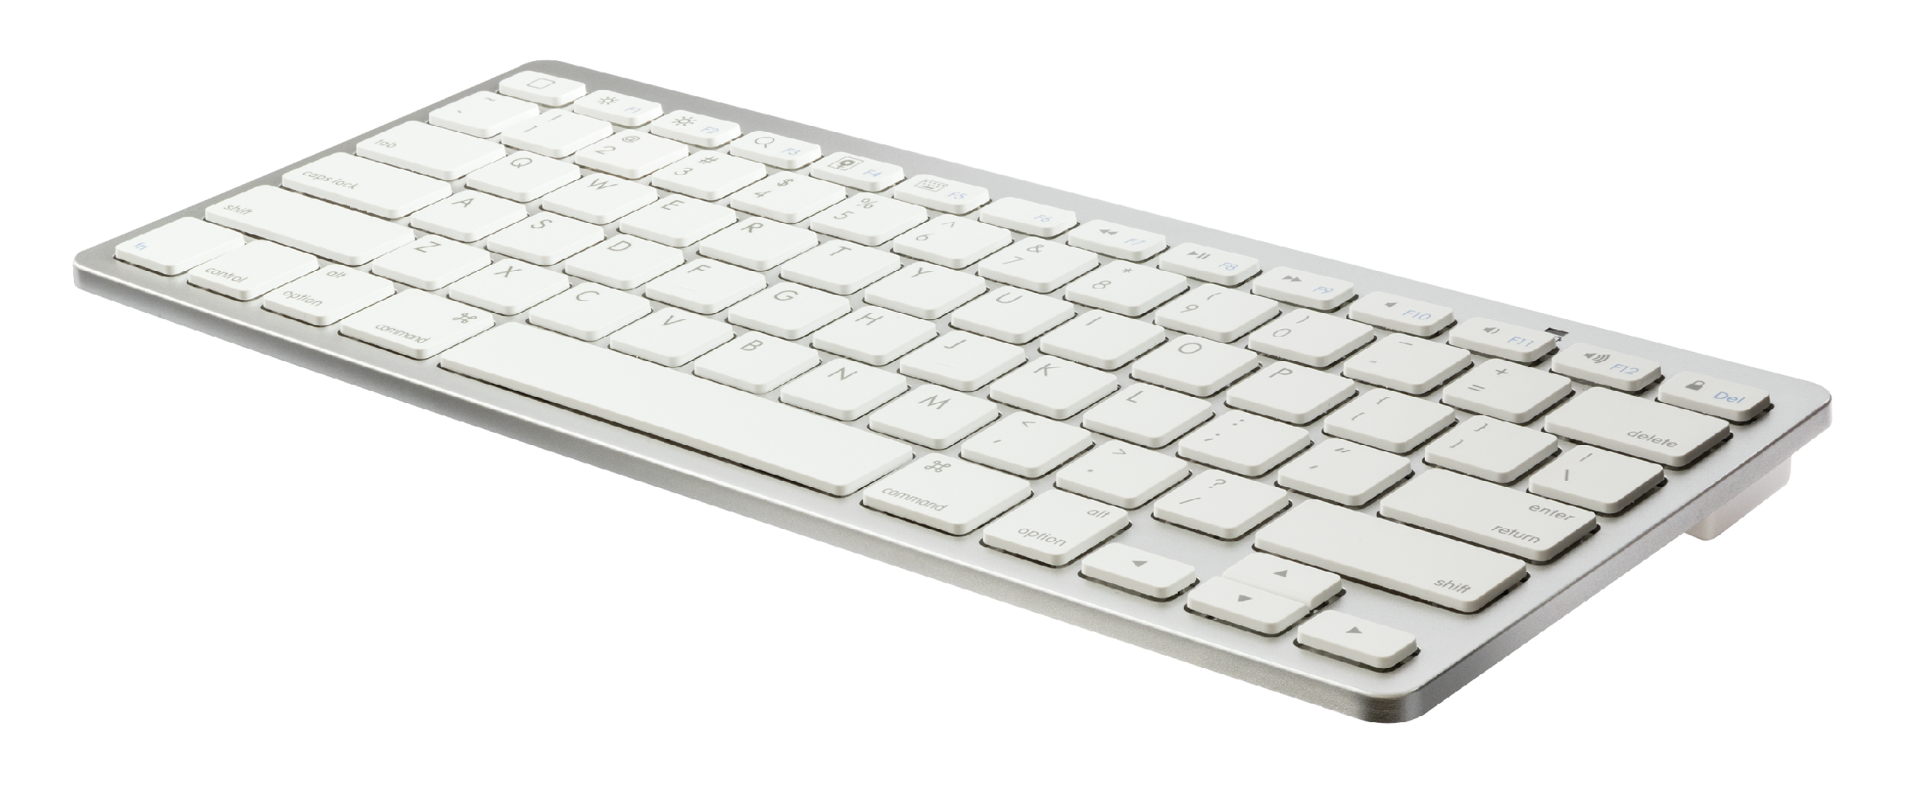 Wireless Bluetooth Keyboard for PC, laptop, tablet & phone-Visual